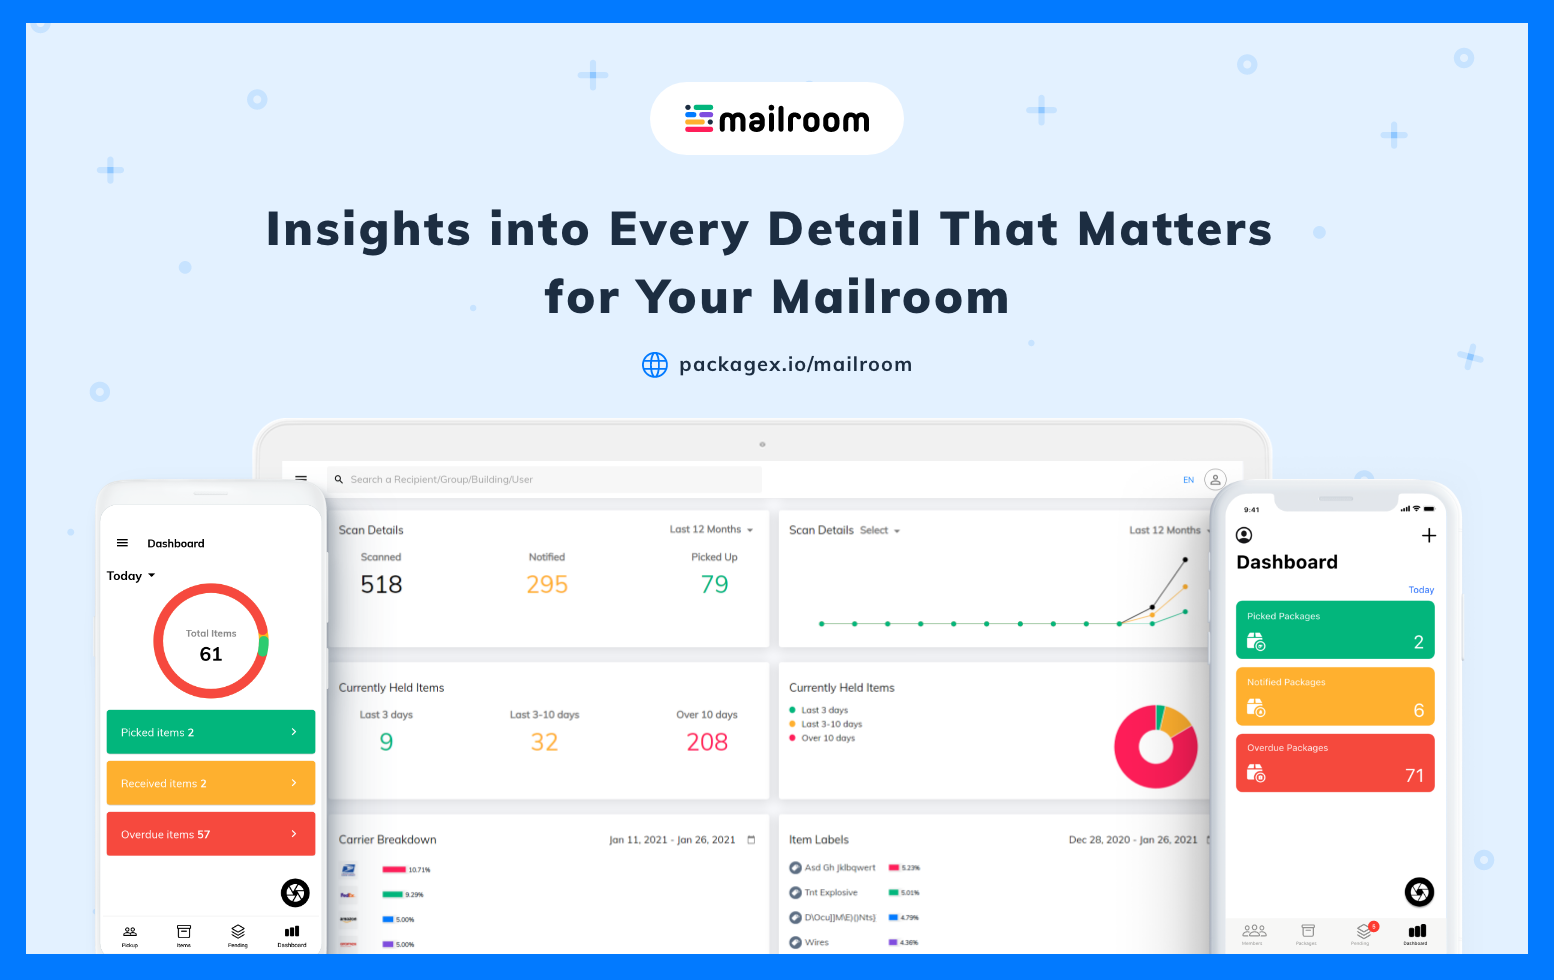 Meaningful insights into your mailroom's operations are now just a click away.